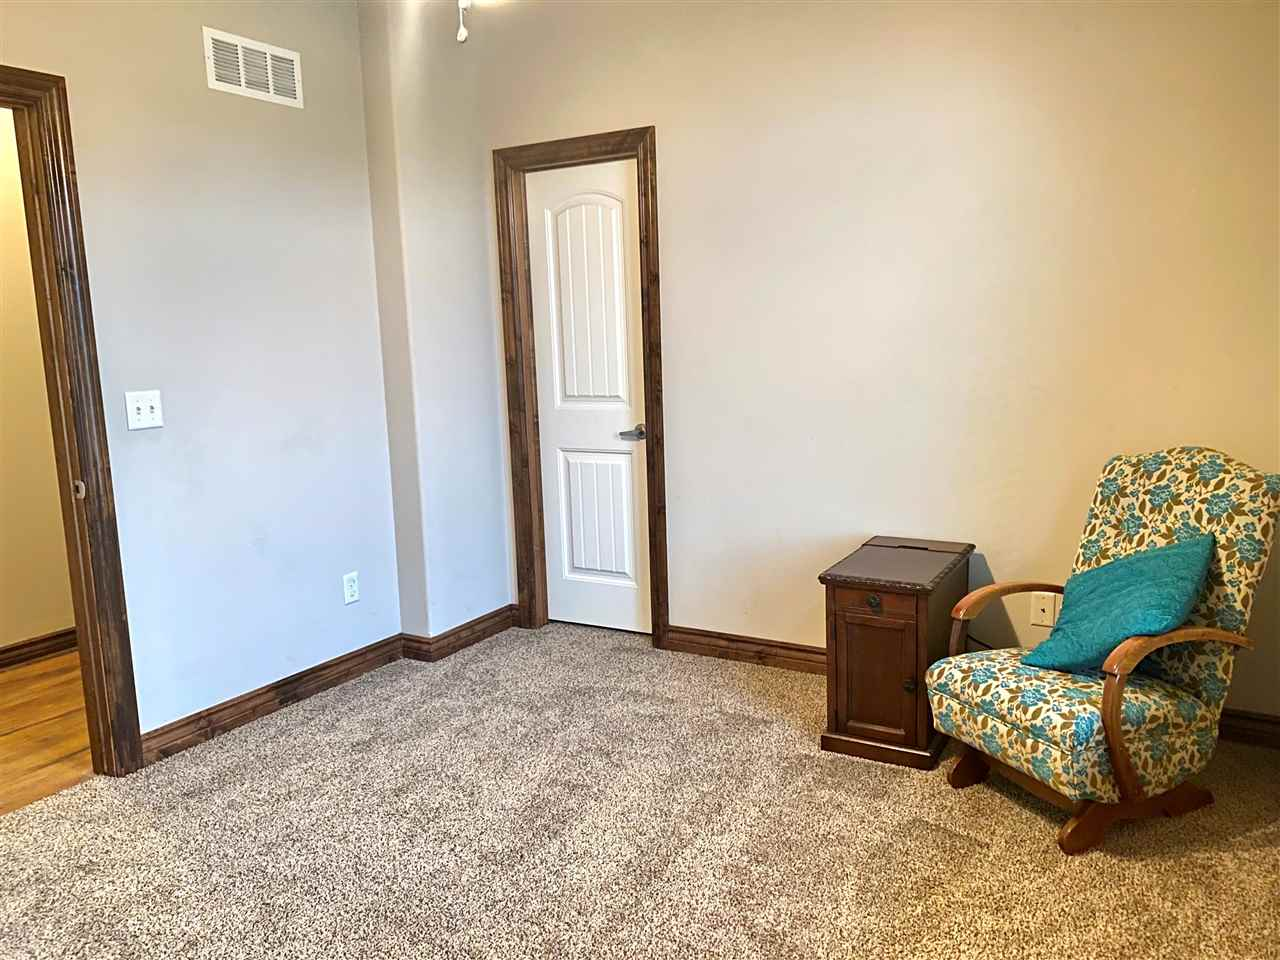 For Sale: 15101 W HAYDEN ST, Wichita KS